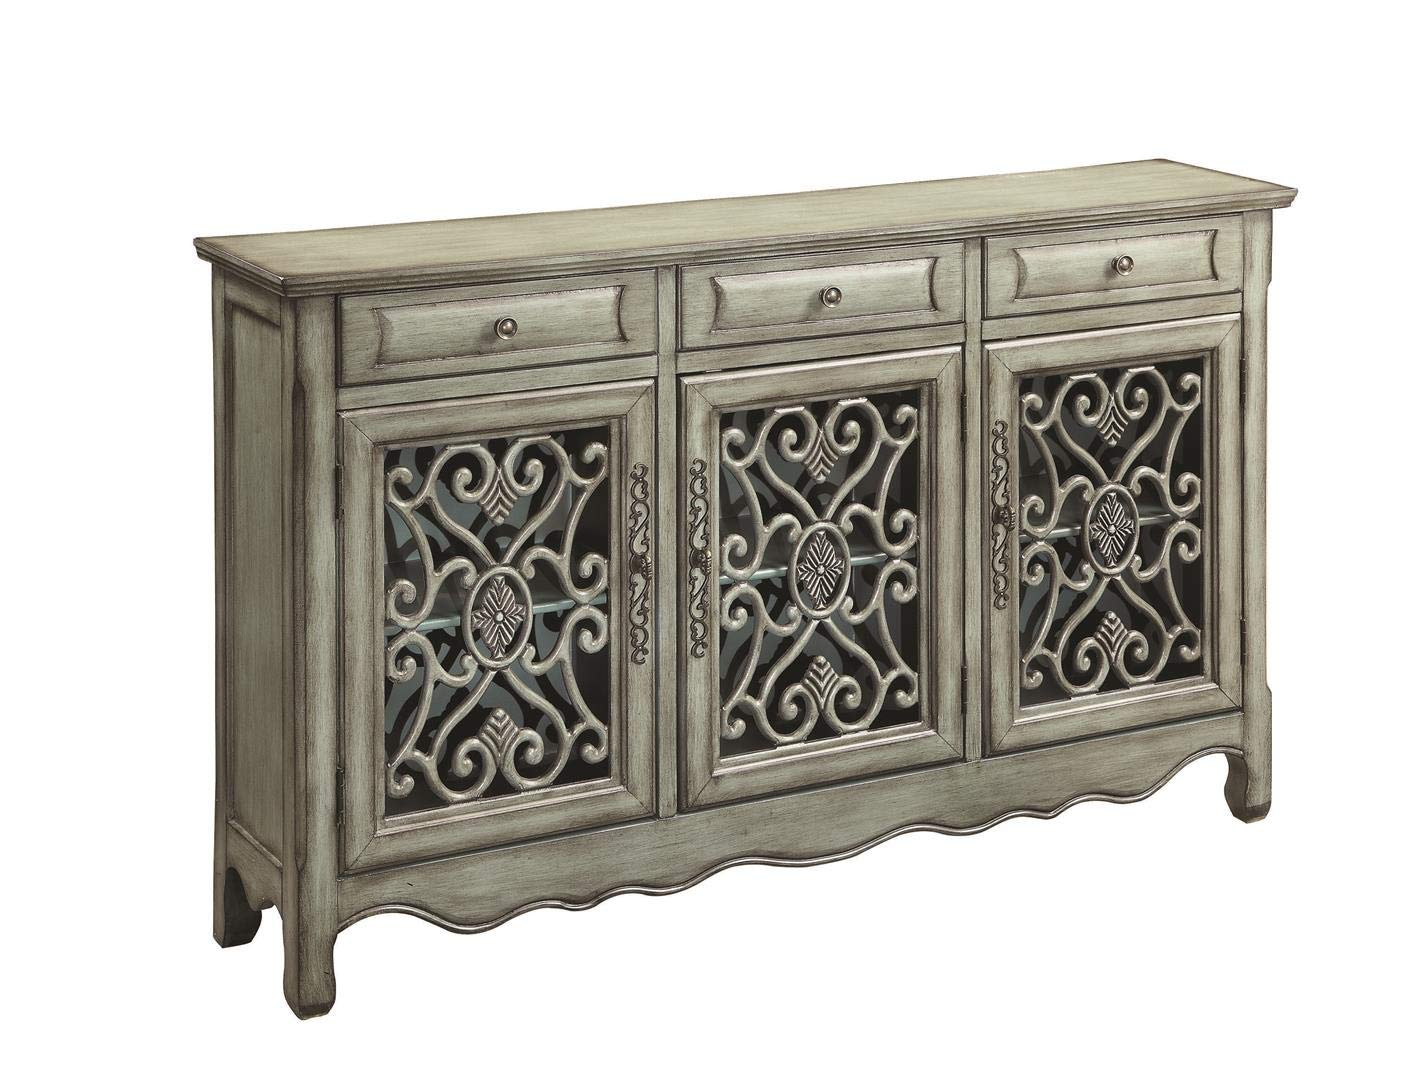 3-Door Accent Cabinet Antique Green by Coaster Home Furnishings